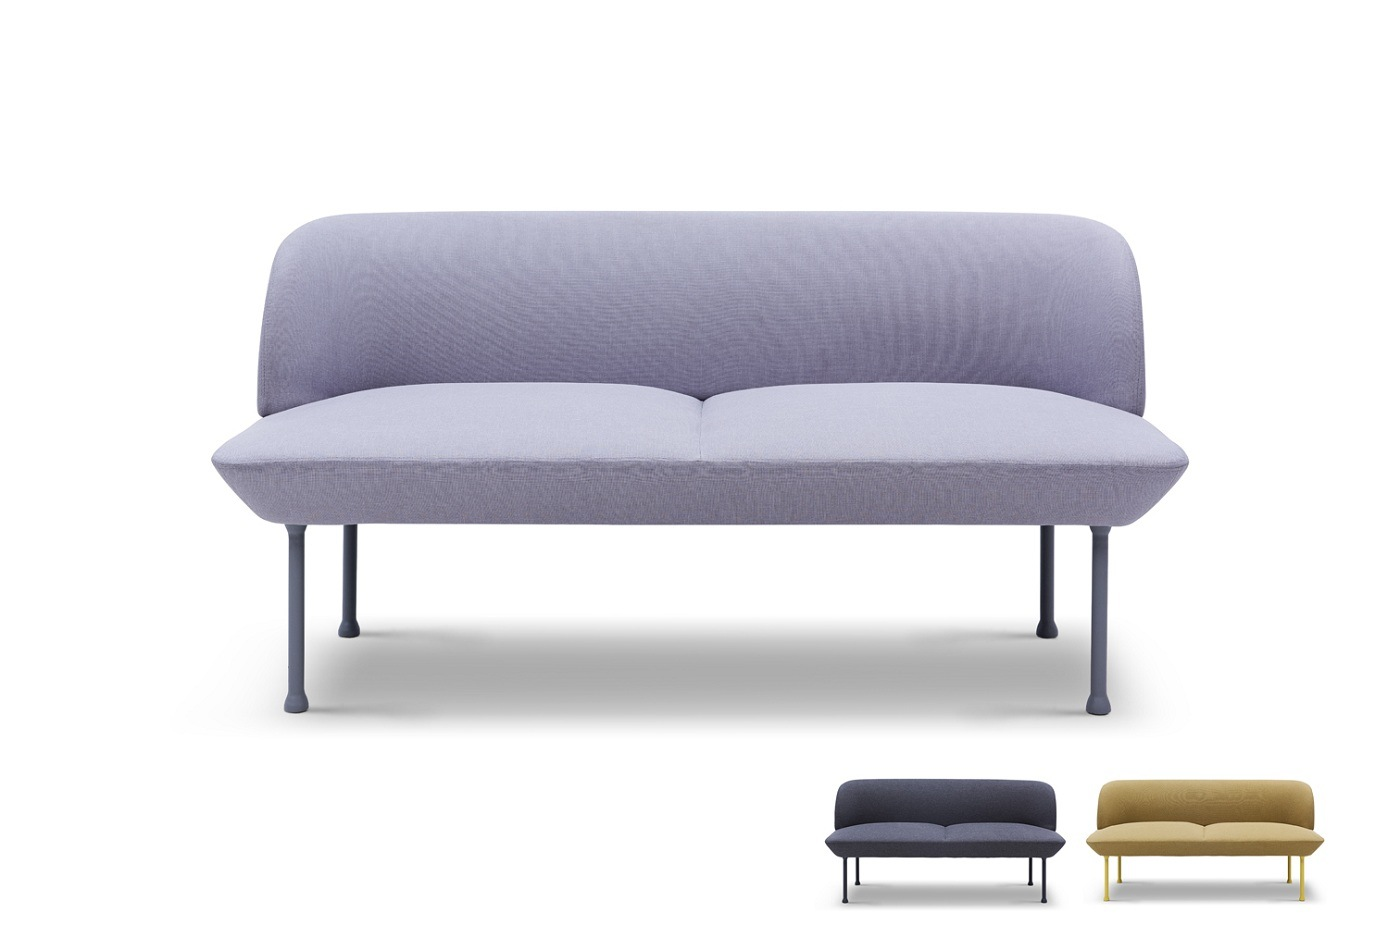 Muuto Oslo Sofa Hot Item Long Leg Chair Muuto Oslo Two Seater Sofa European Style